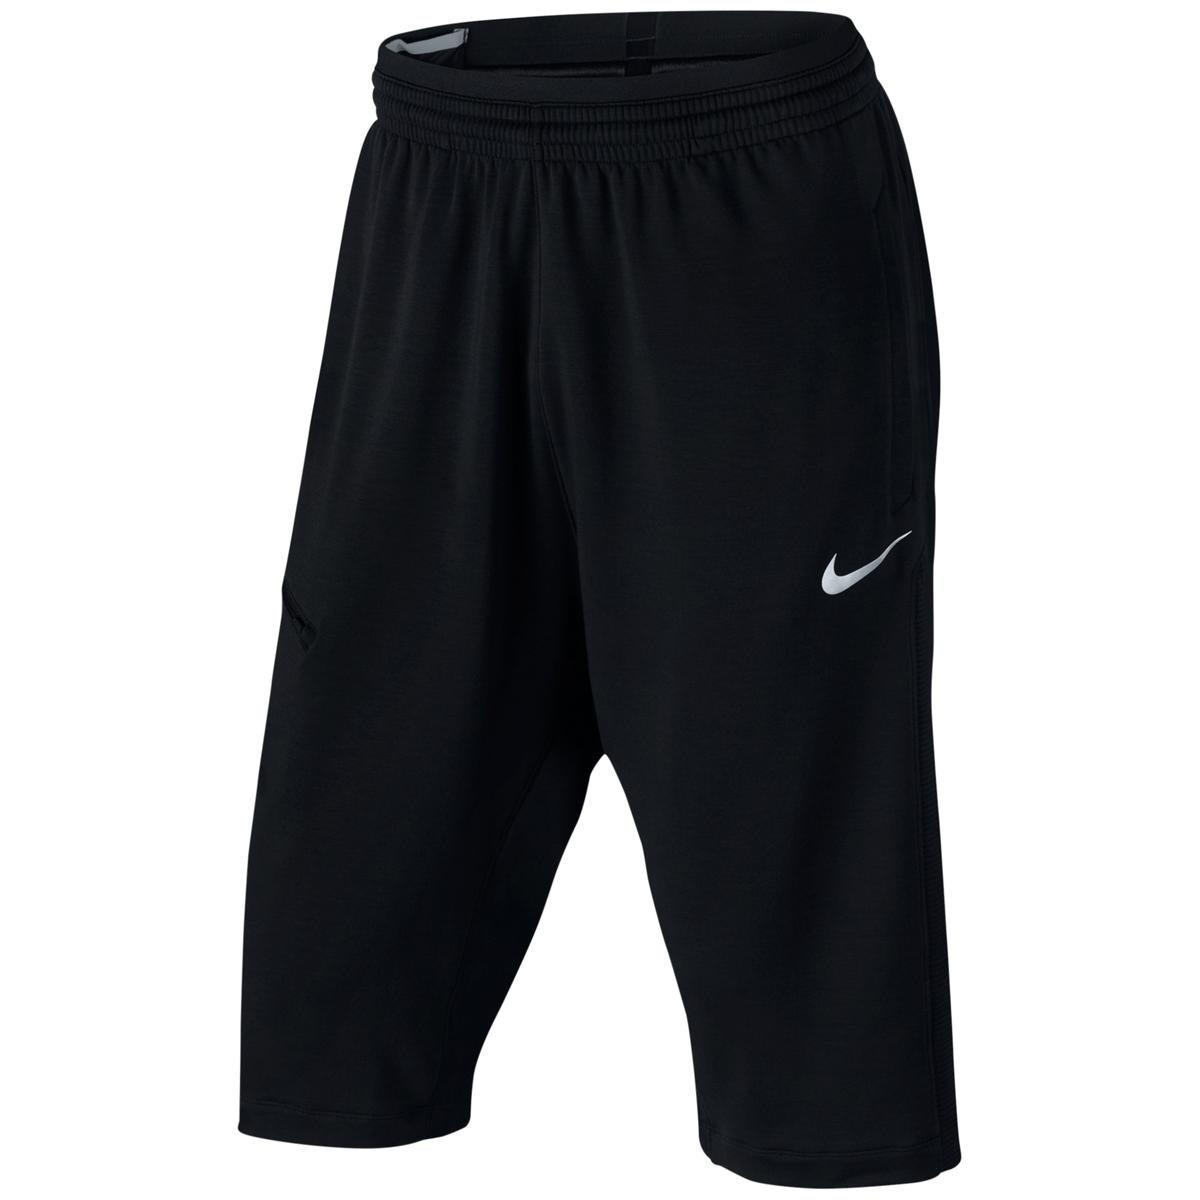 45727e918de6f Shop Nike Mens Dry Shorts Basketball Zip Pocket - M - Free Shipping On  Orders Over $45 - Overstock - 25780929